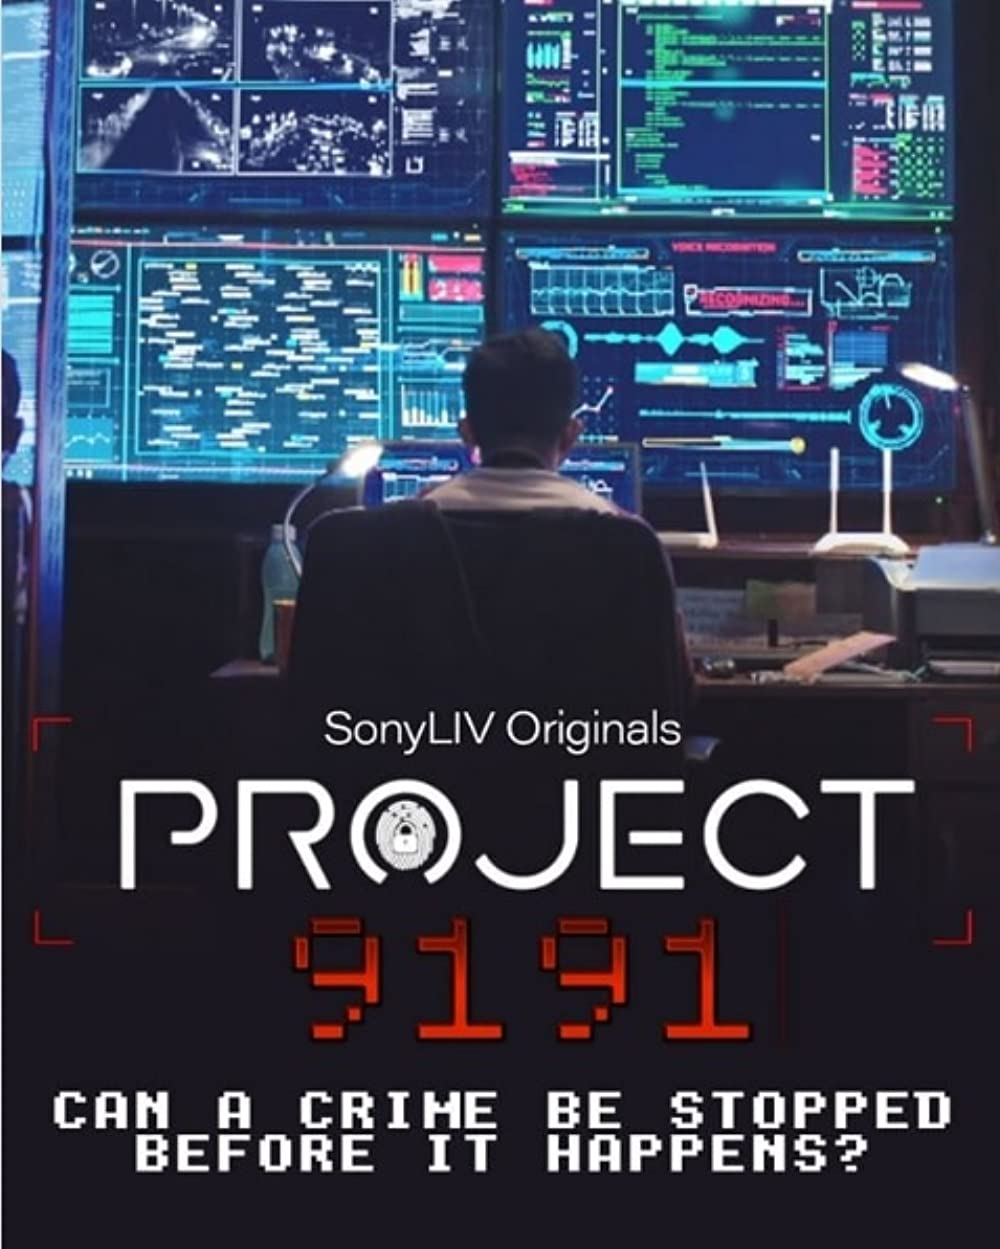 Download Project 9191 2021 S01 Hindi Complete Sonyliv Original Web Series 480p HDRip 840MB